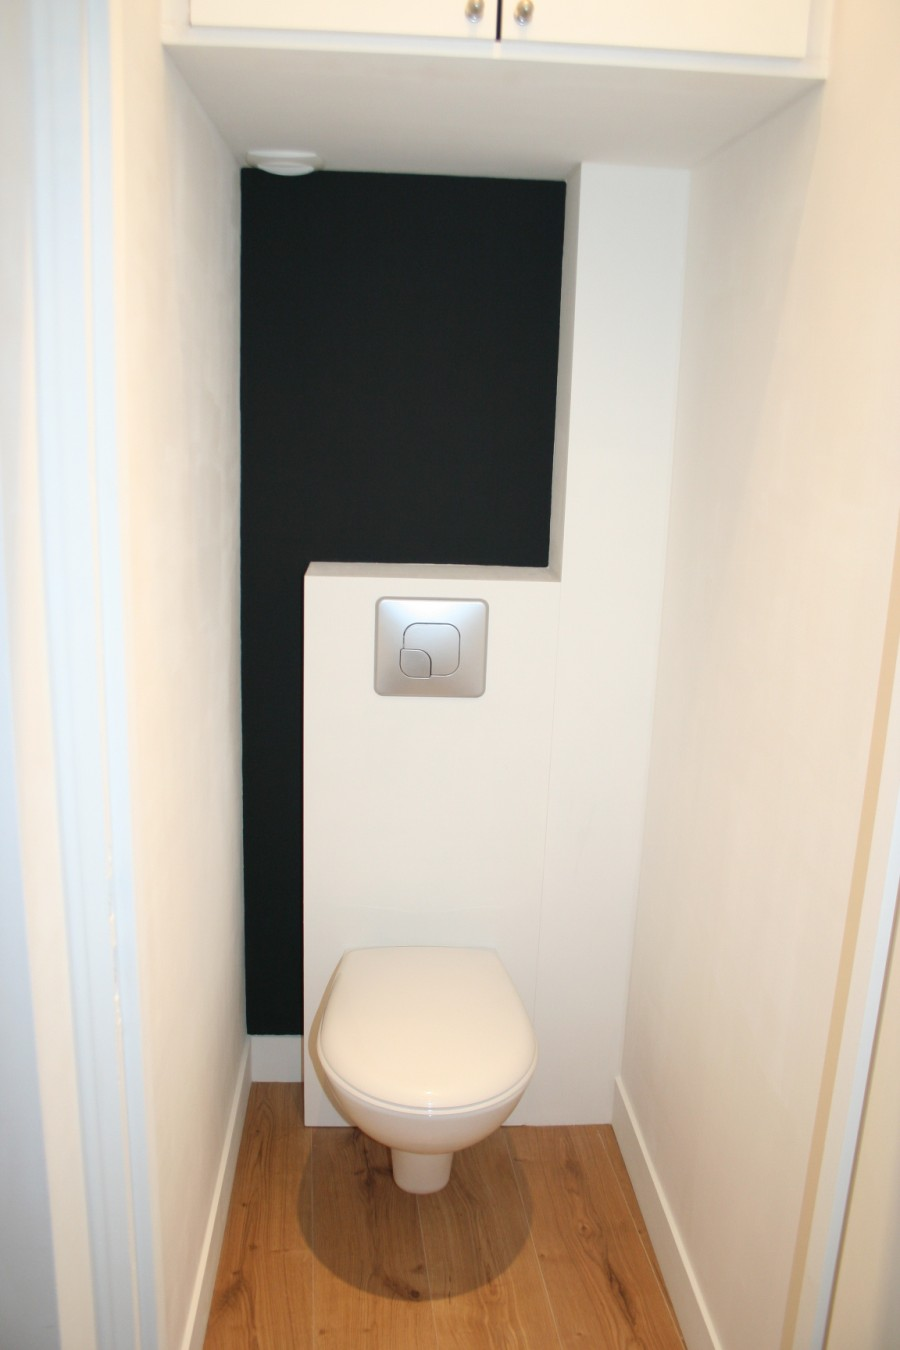 Photo deco wc suspendu design - Photo Déco